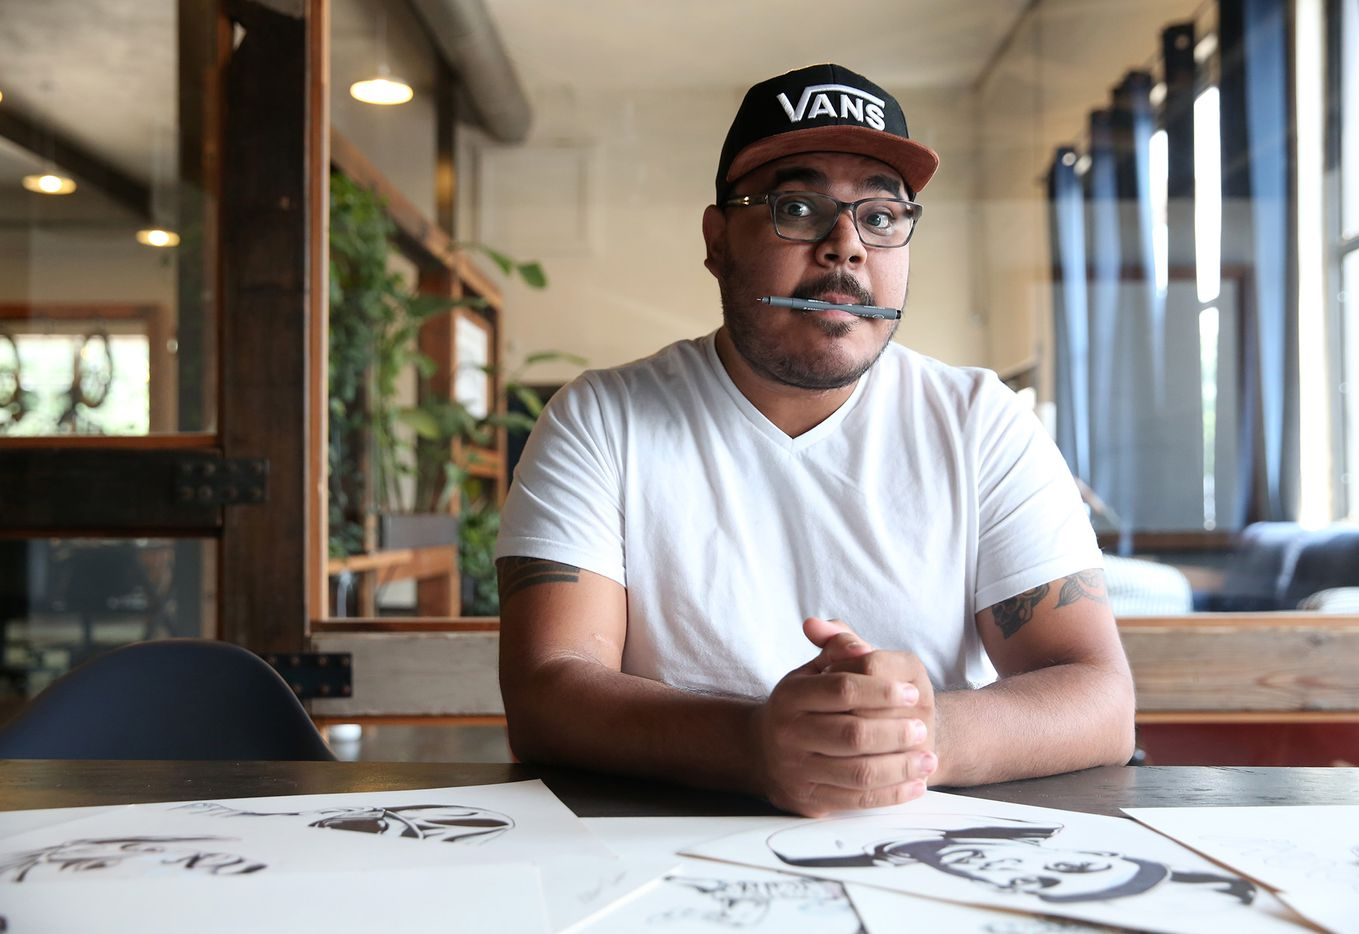 Arturo Torres, a local Dallas artist, poses for a photograph at Common Desk in Oak Cliff on May 18.